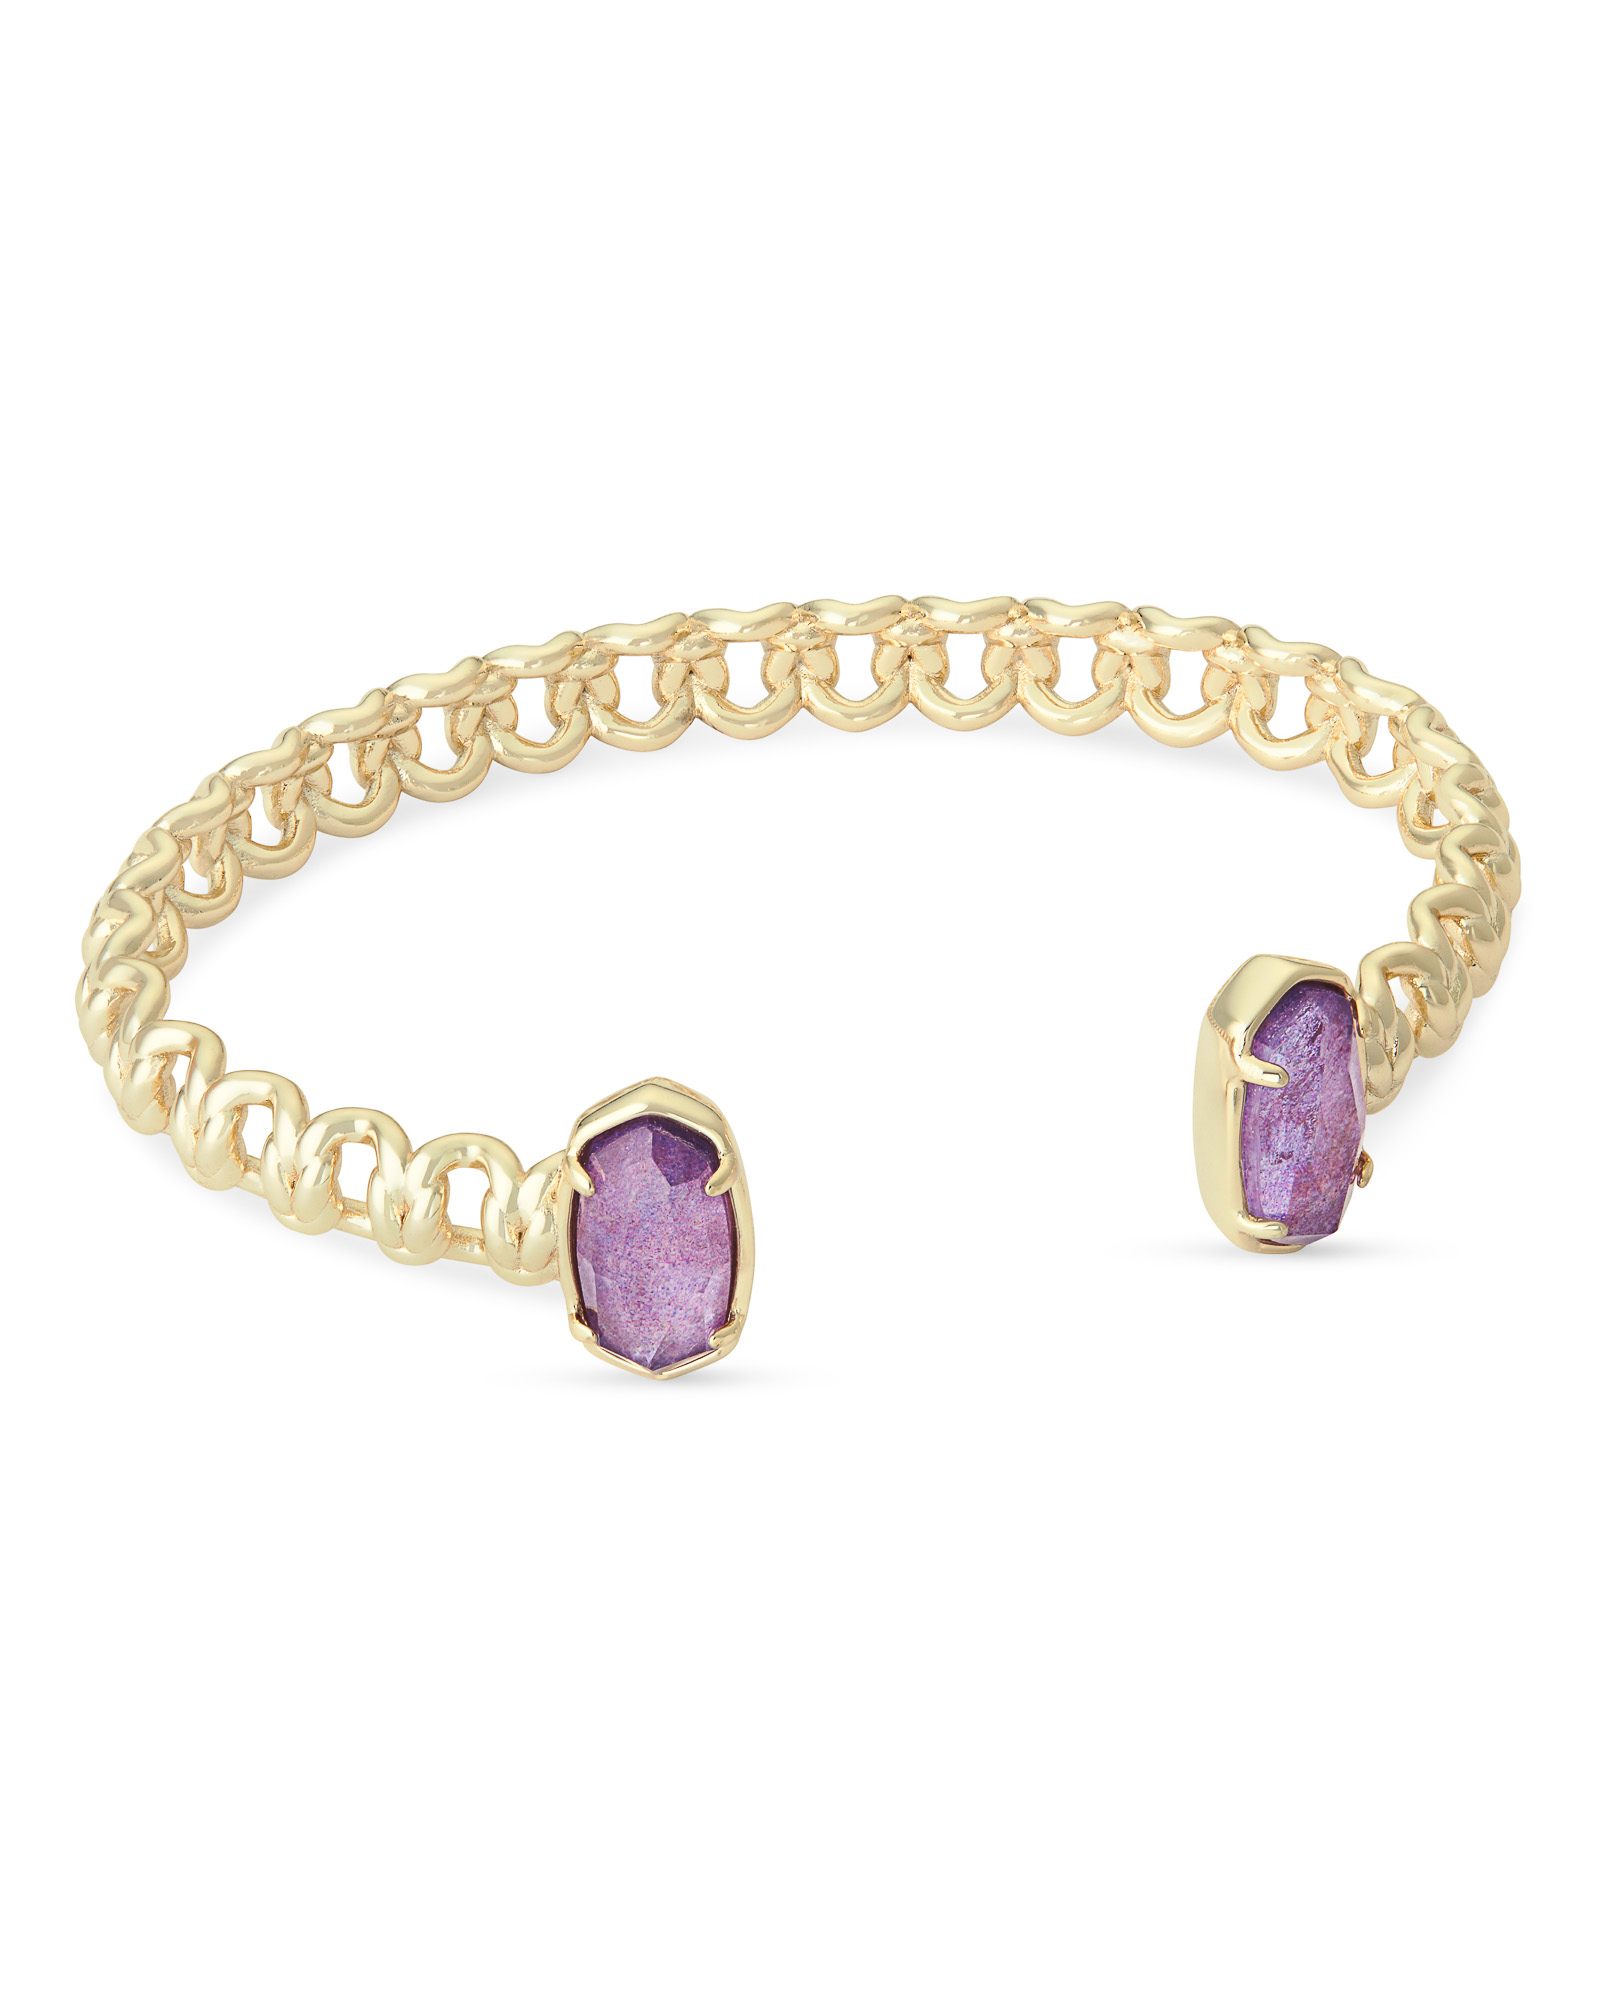 Macrame Elton Gold Cuff Bracelet In Purple Mica